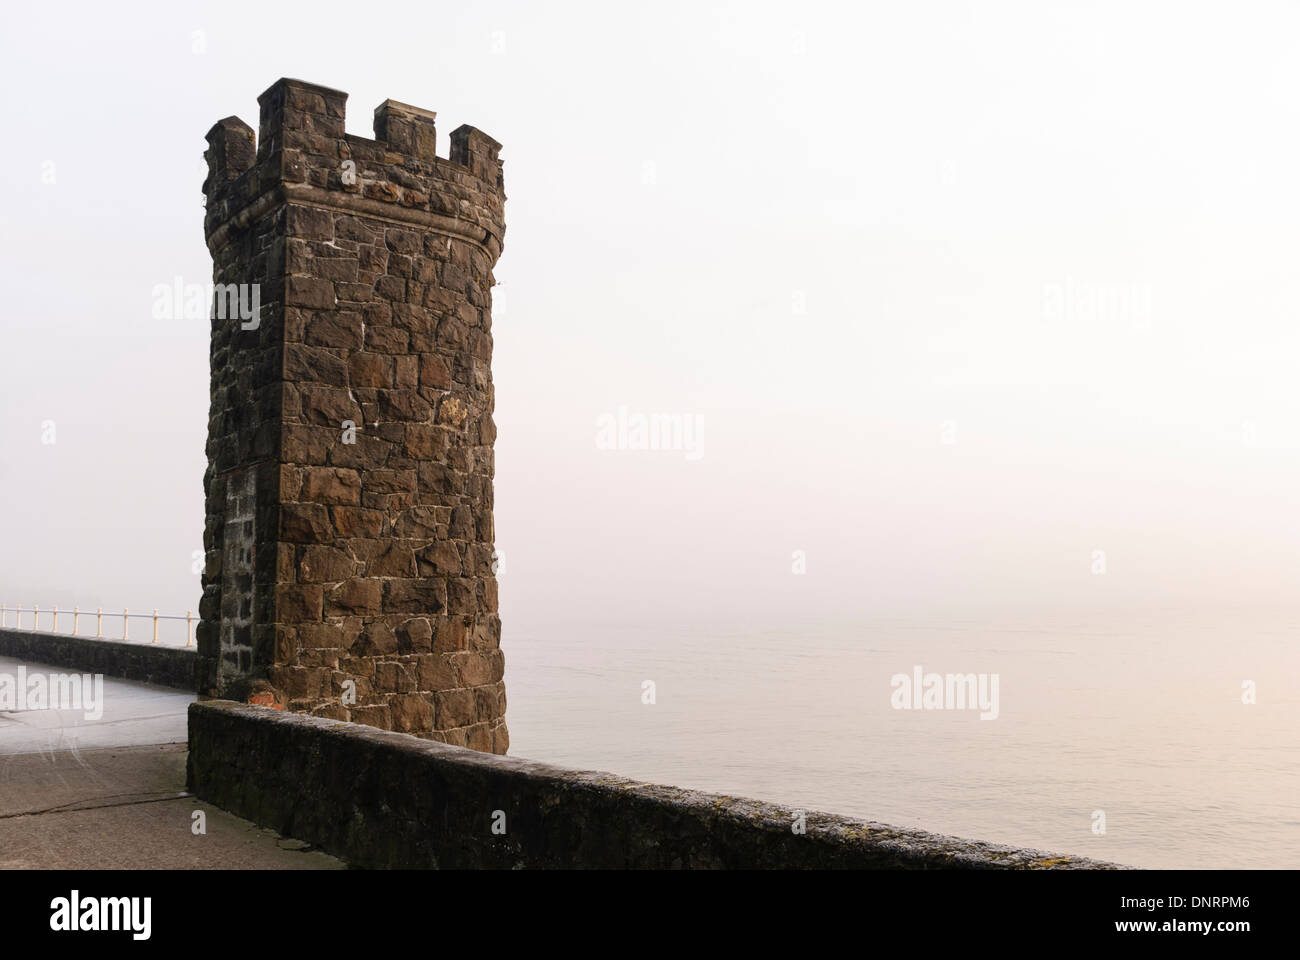 Stone castlated tower on a sea wall on a misty morning Stock Photo